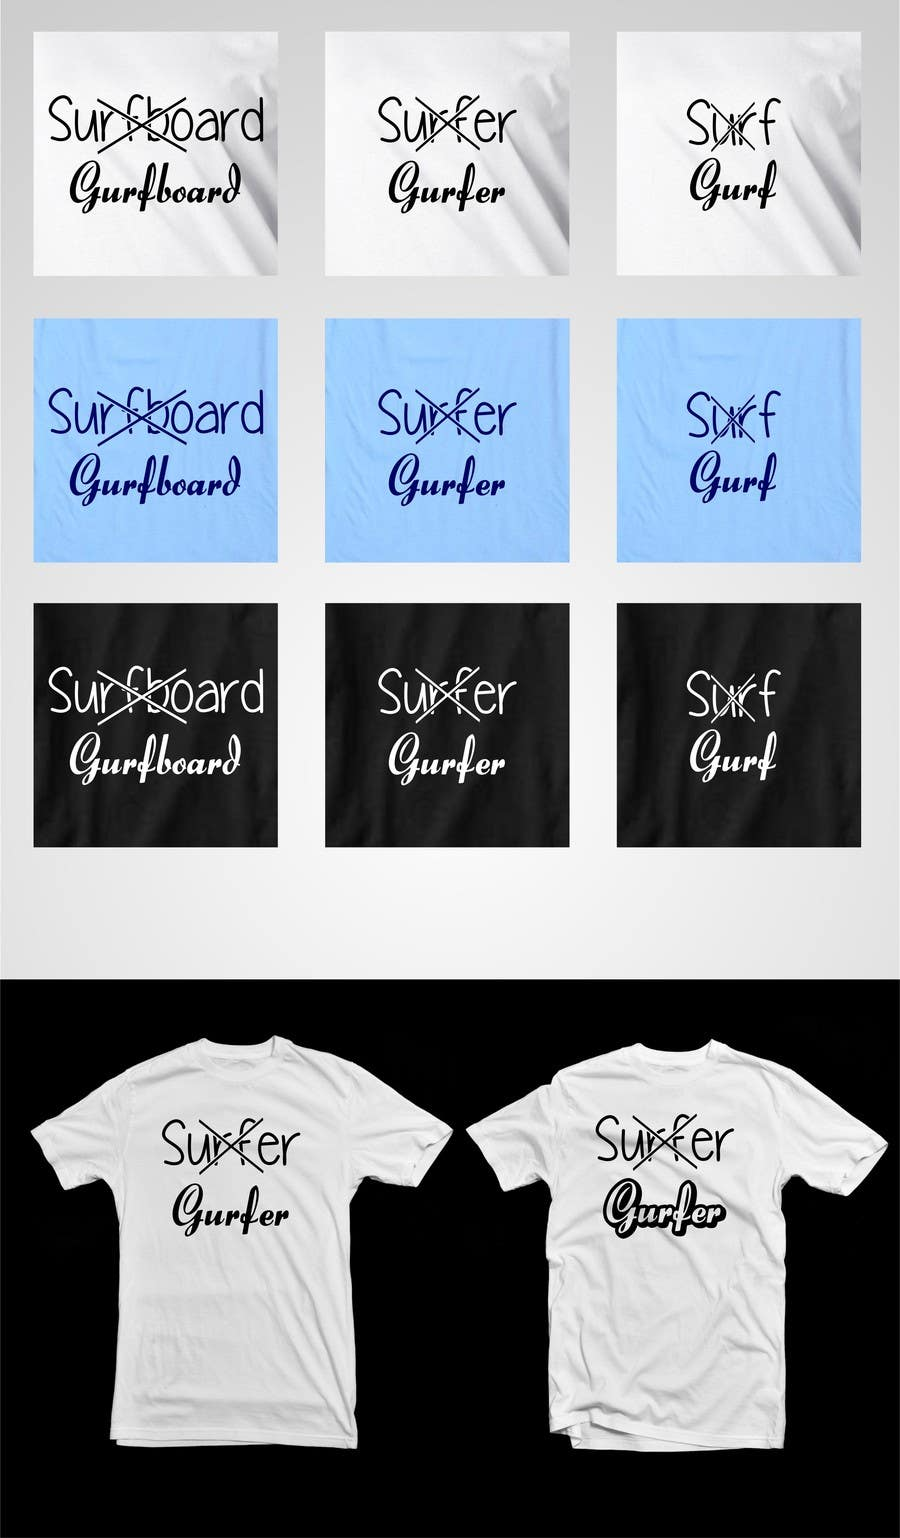 #11 for Design a T-Shirt for Girl Surfing by erupt